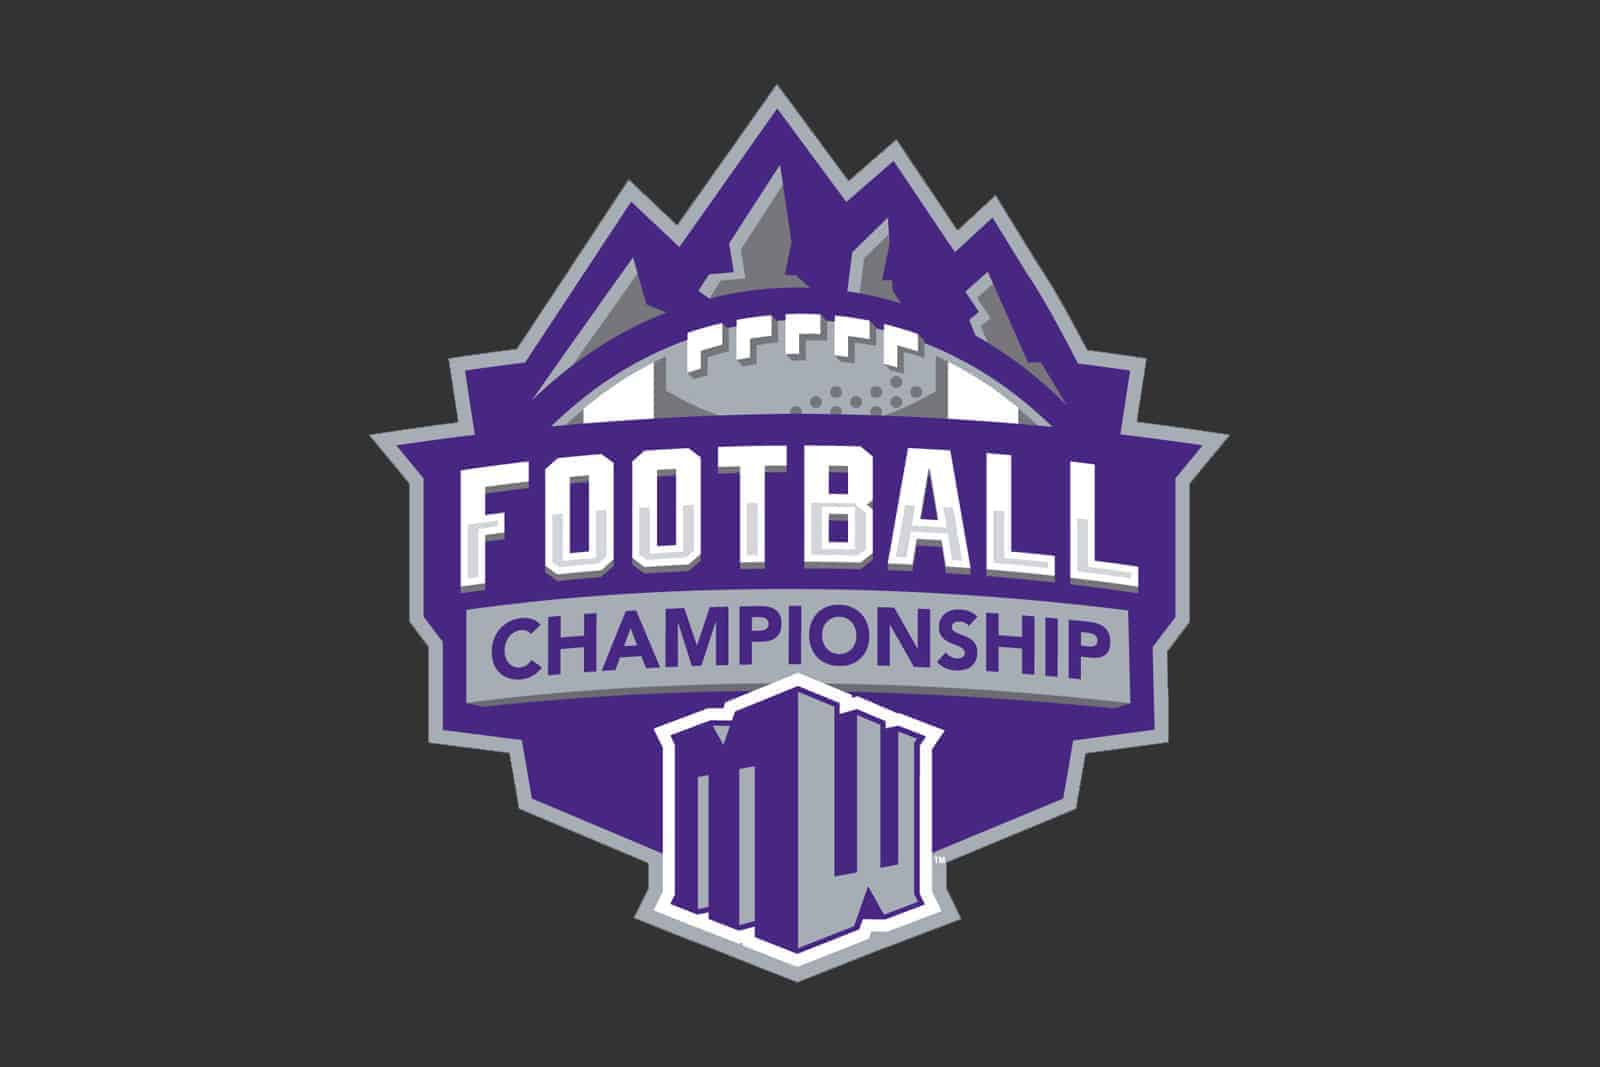 2019 Mountain West Championship Game